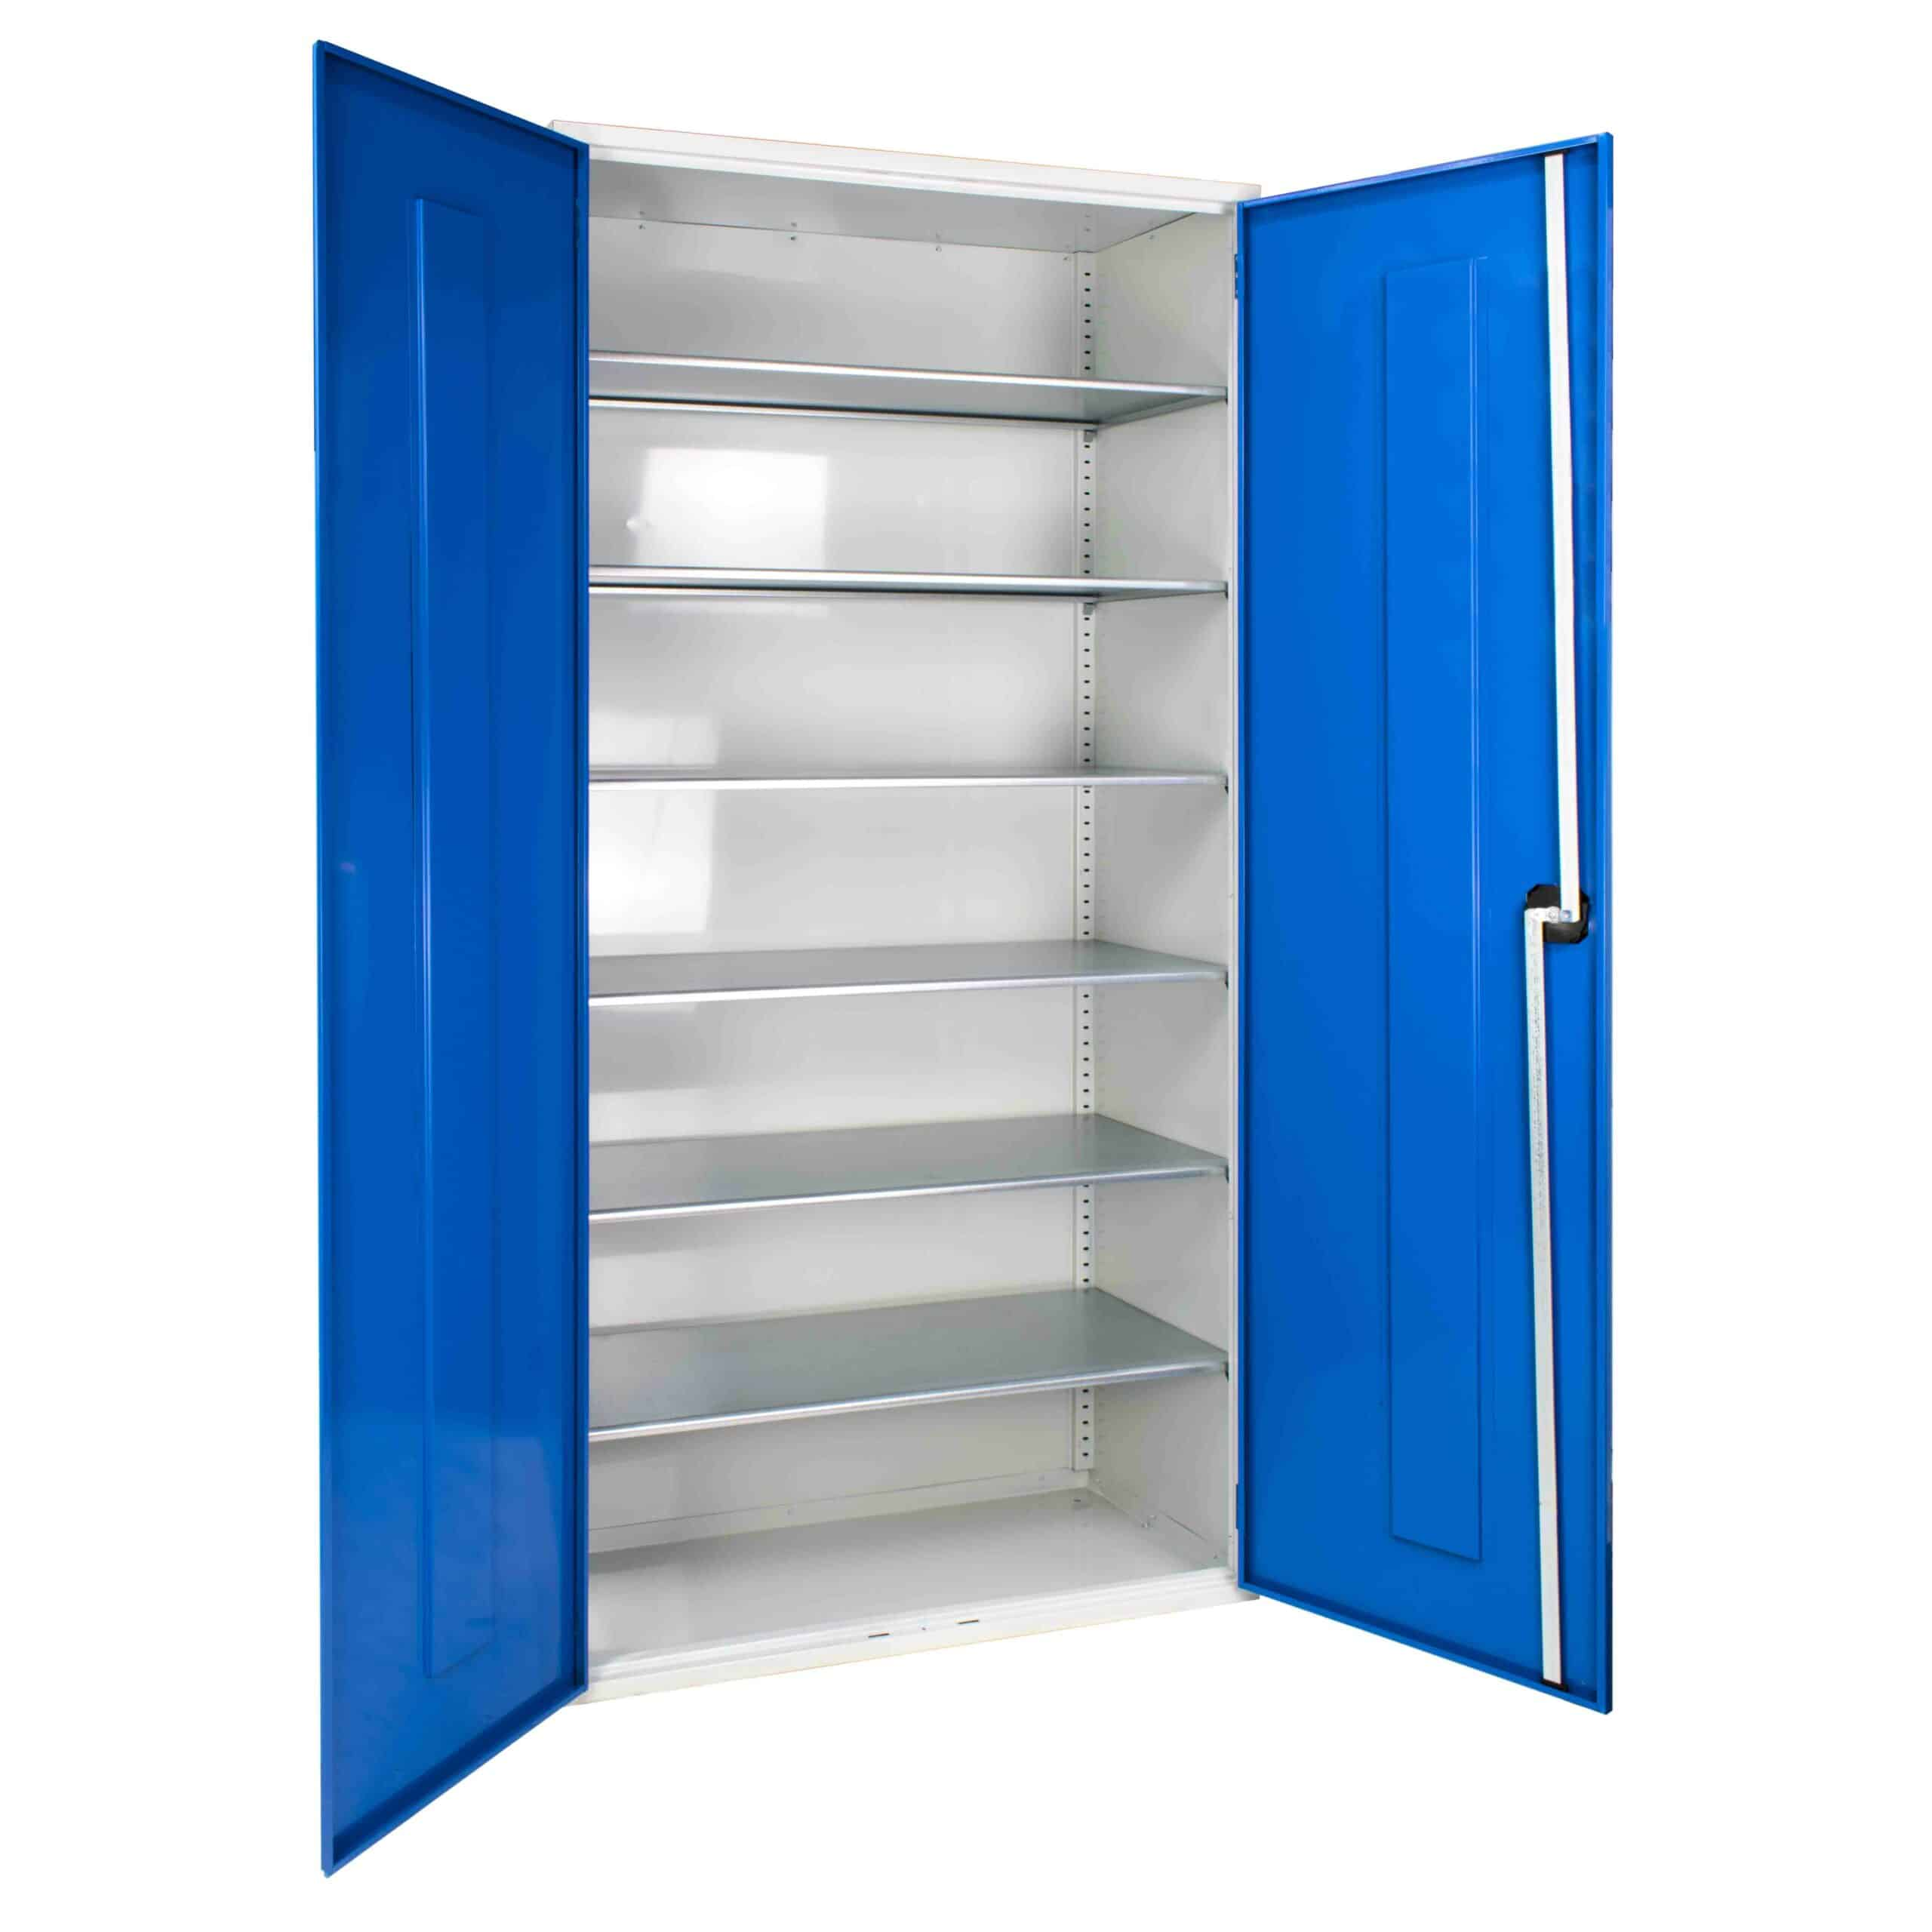 Container Cabinet With 6 Shelves 2000mm High